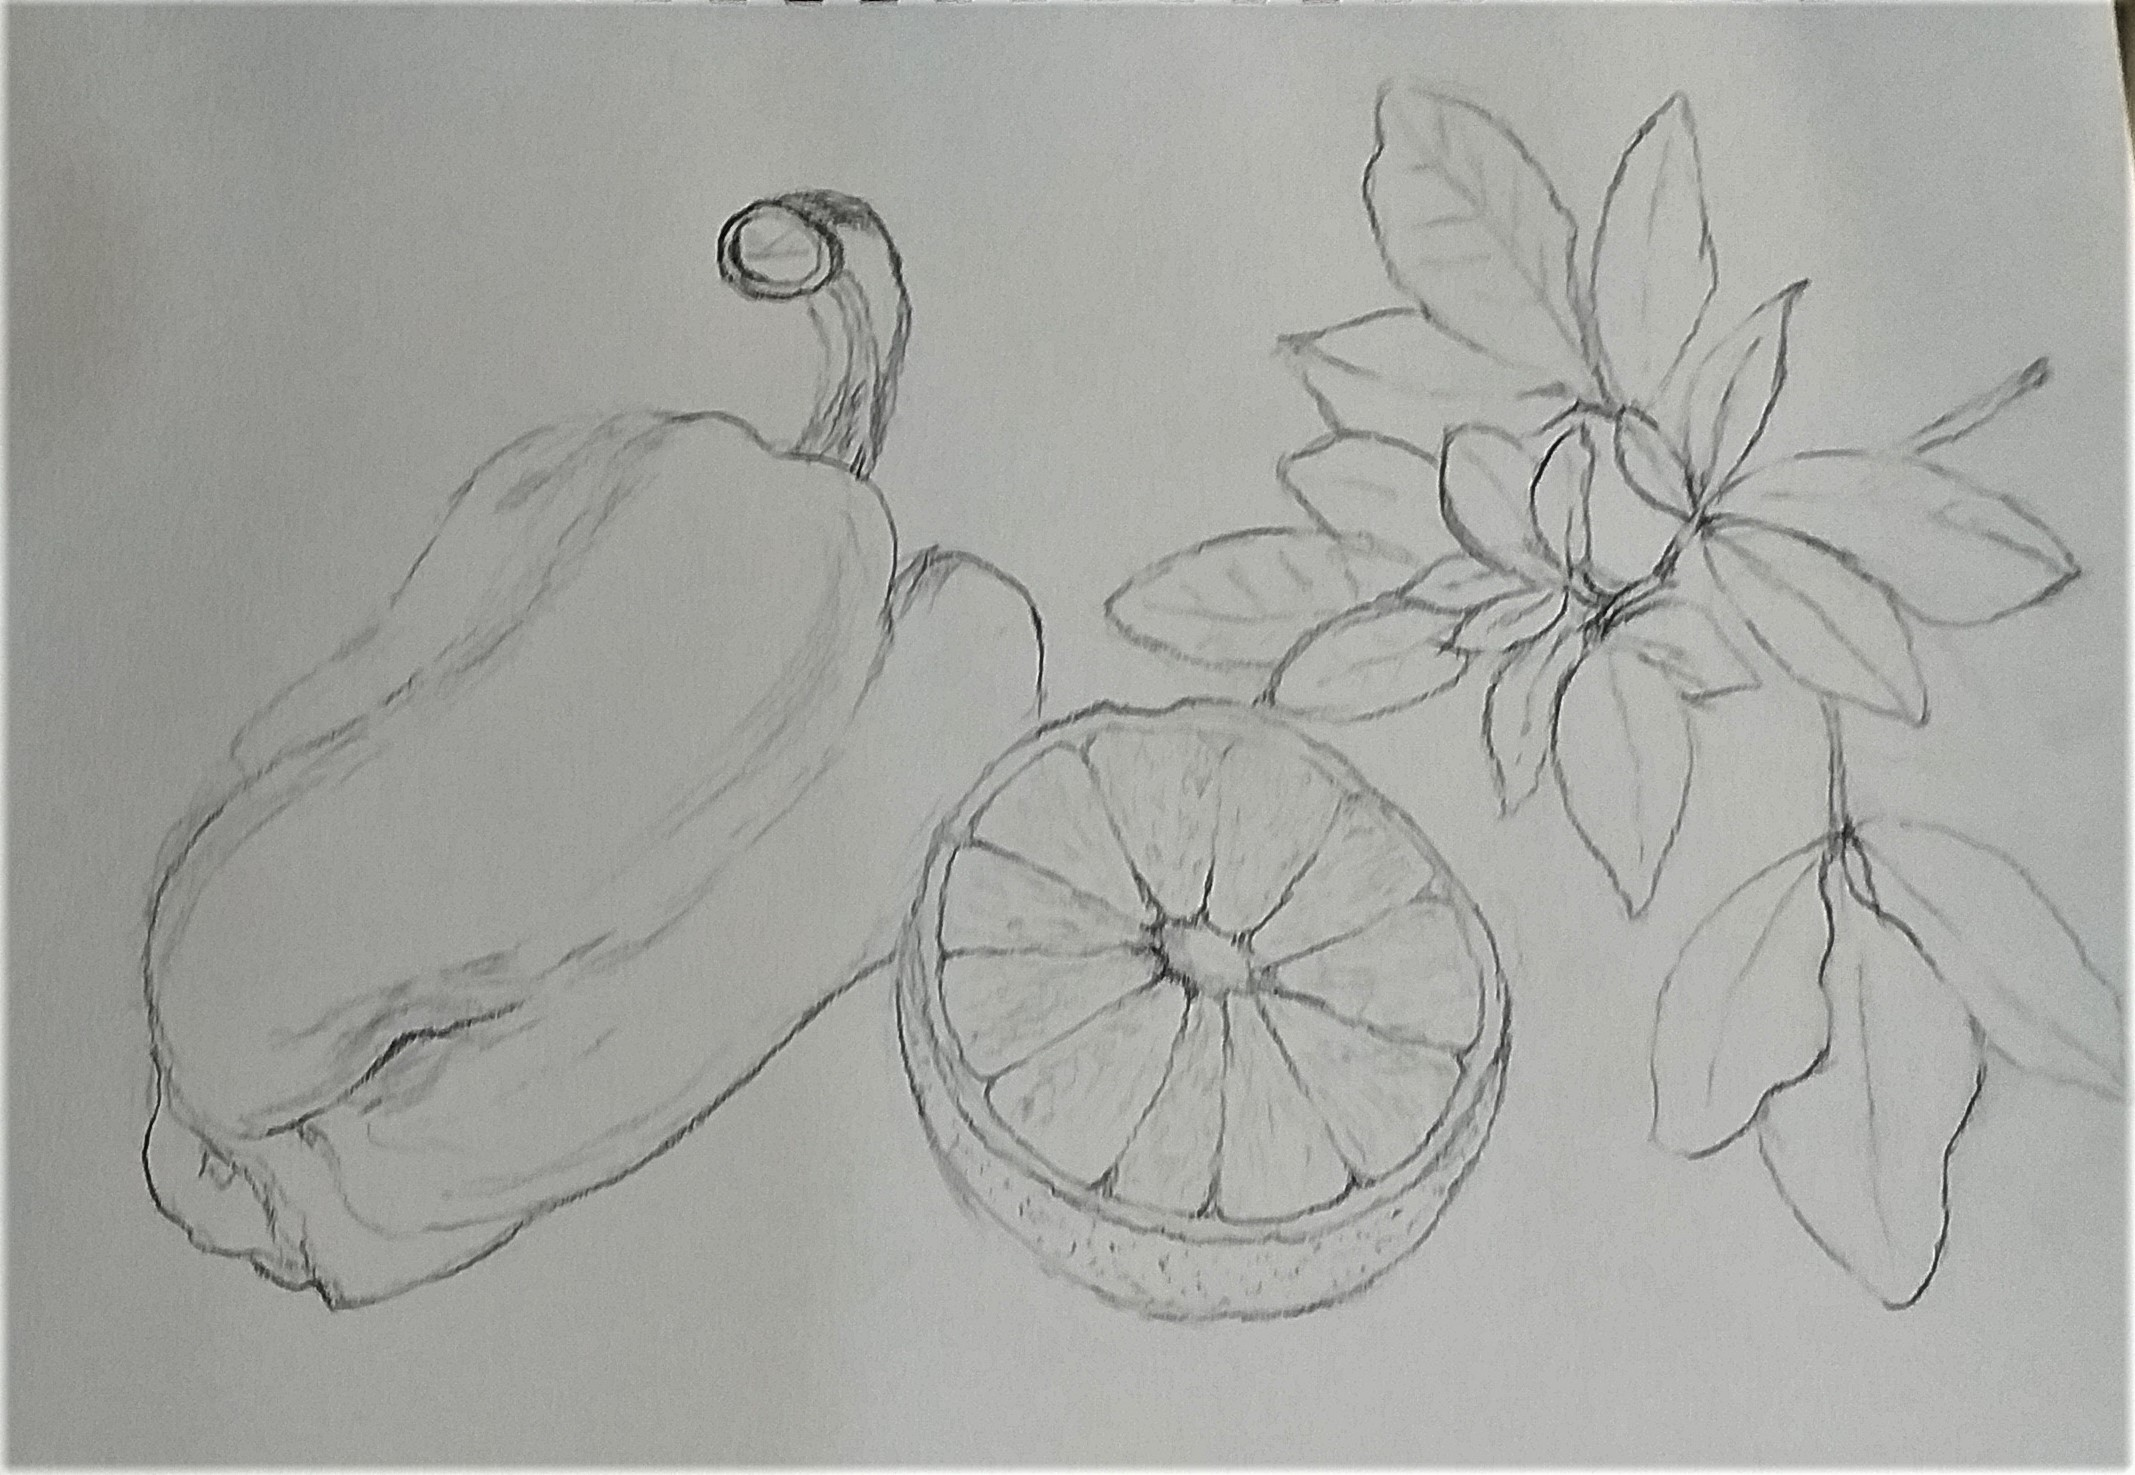 Karen's drawing of natural forms produced at Raya's Art course in Kidderminster